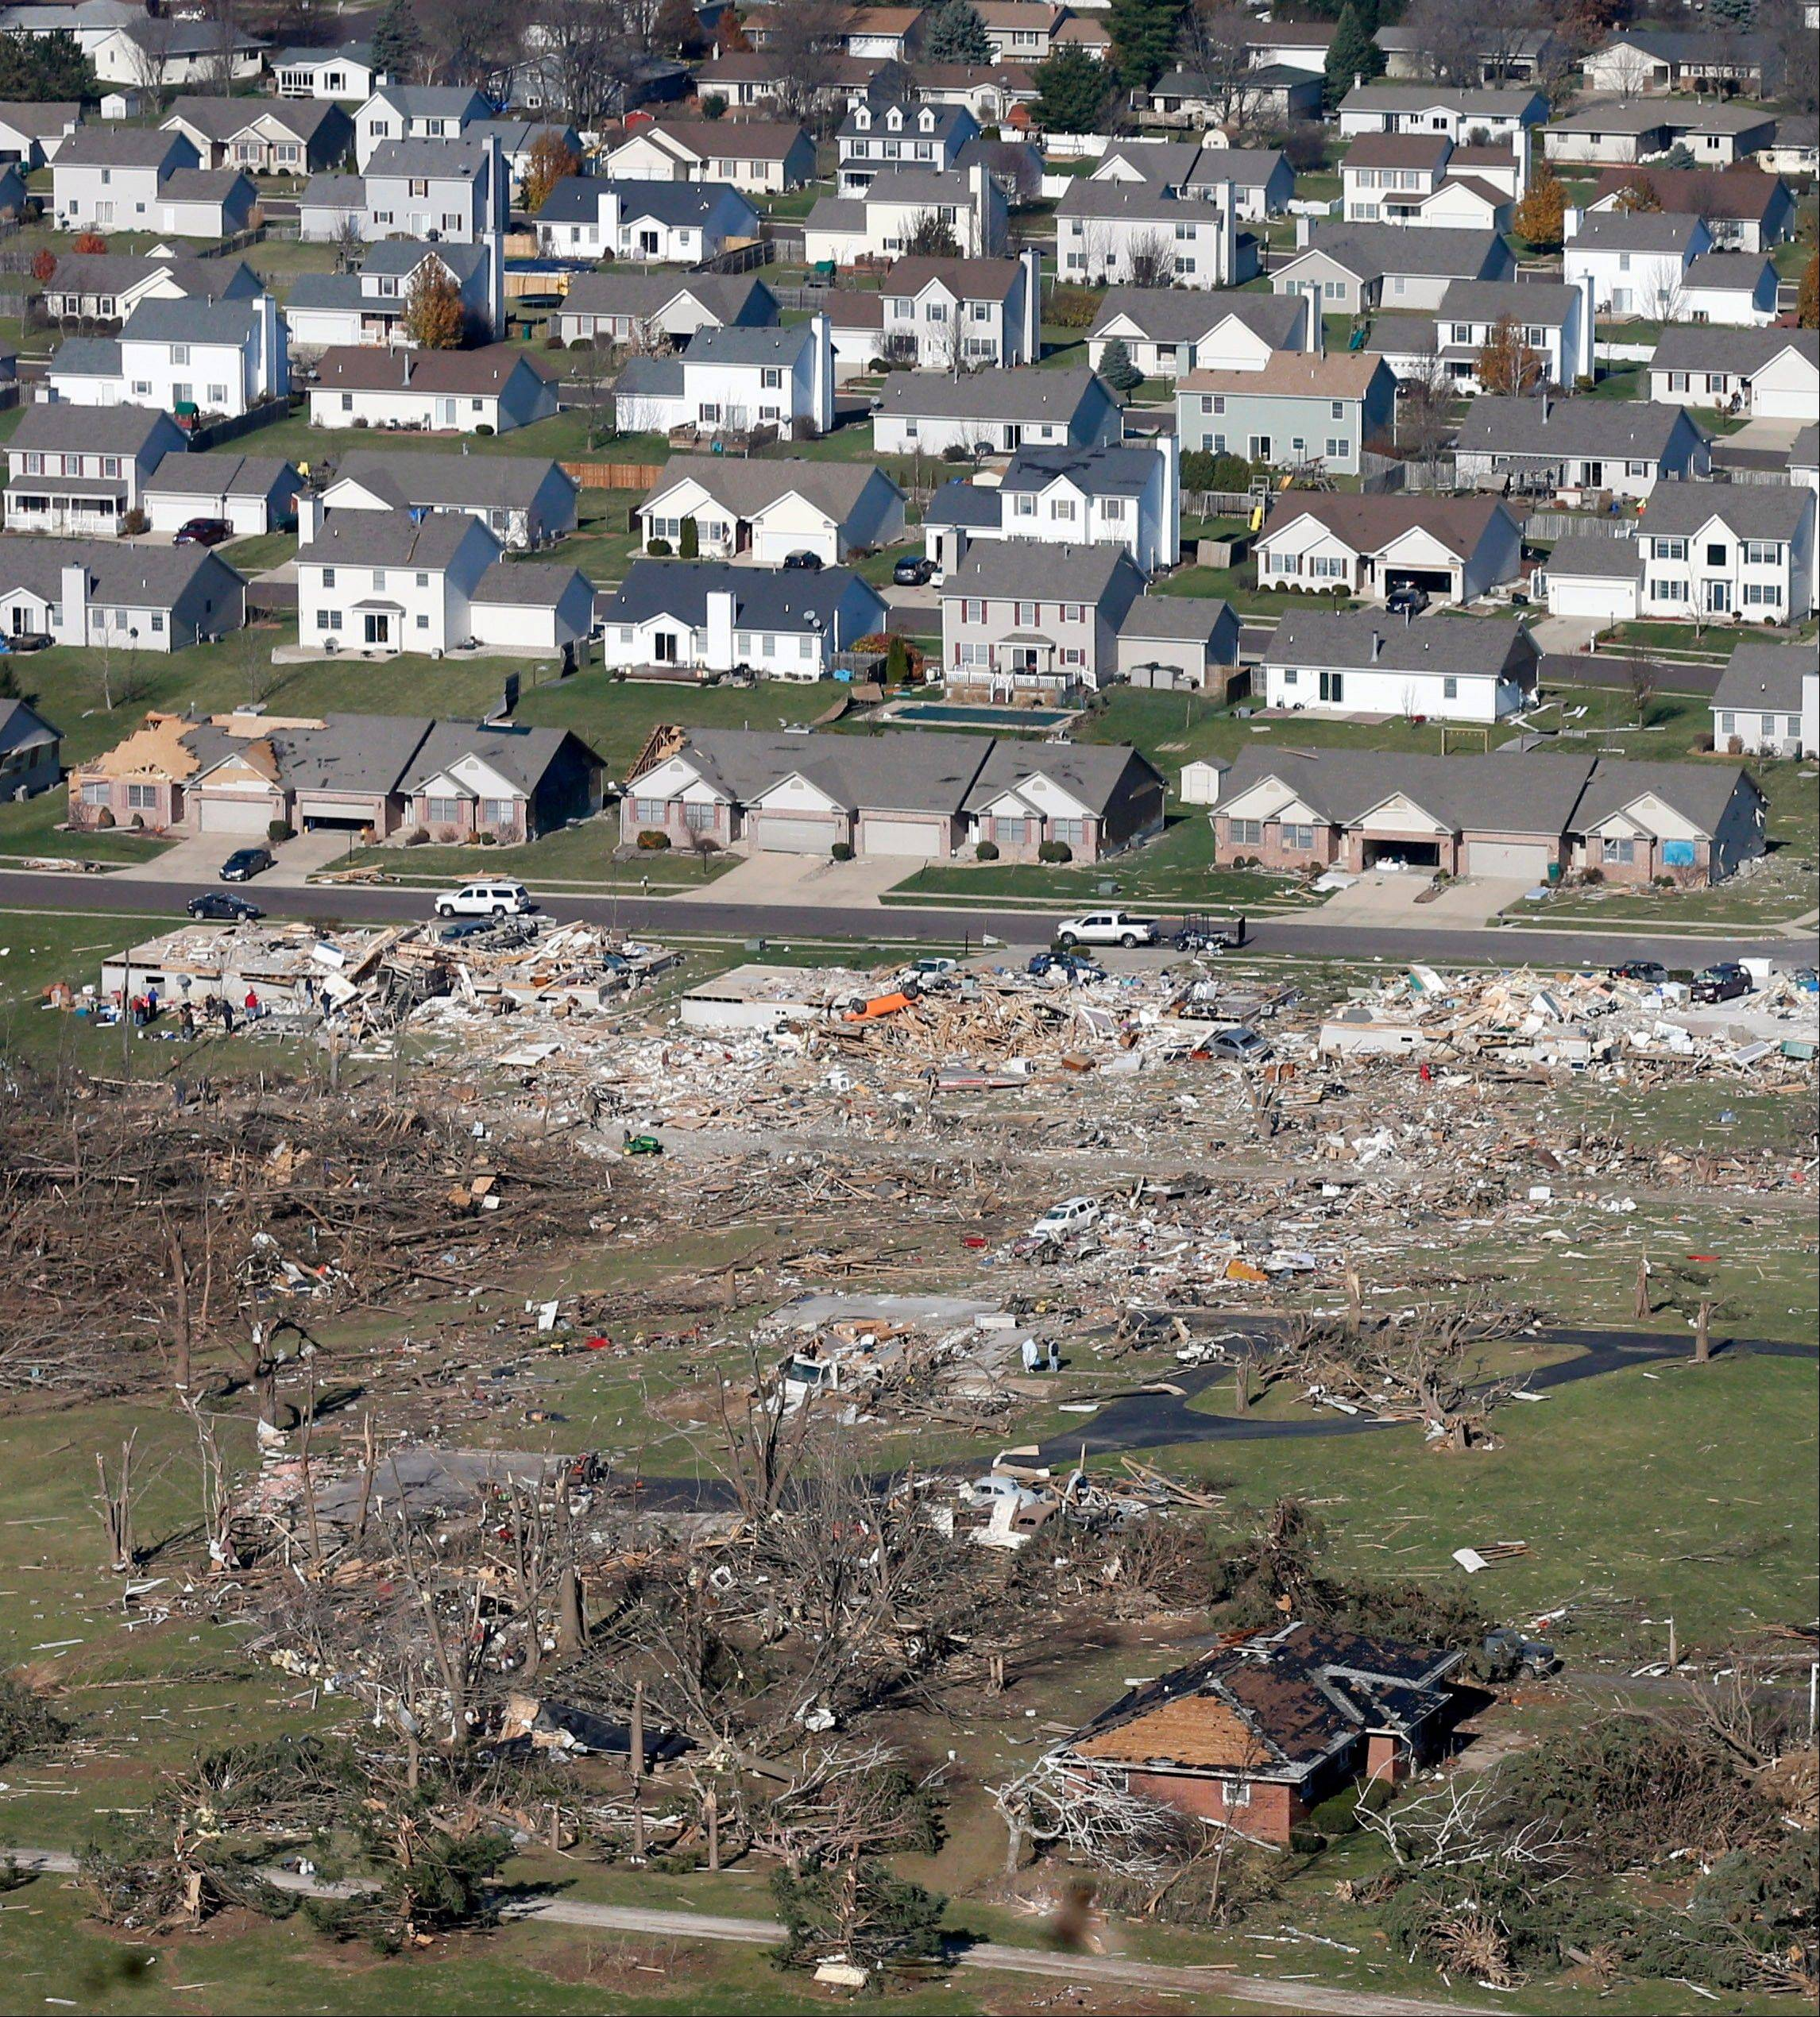 This aerial view on Monday, Nov. 18, 2013, shows untouched homes and homes destroyed by a tornado that hit the western Illinois town of Washington on Sunday. It was one of the worst-hit areas after intense storms and tornadoes swept through Illinois. The National Weather Service says the tornado that hit Washington had a preliminary rating of EF-4, meaning wind speeds of 170 mph to 190 mph.